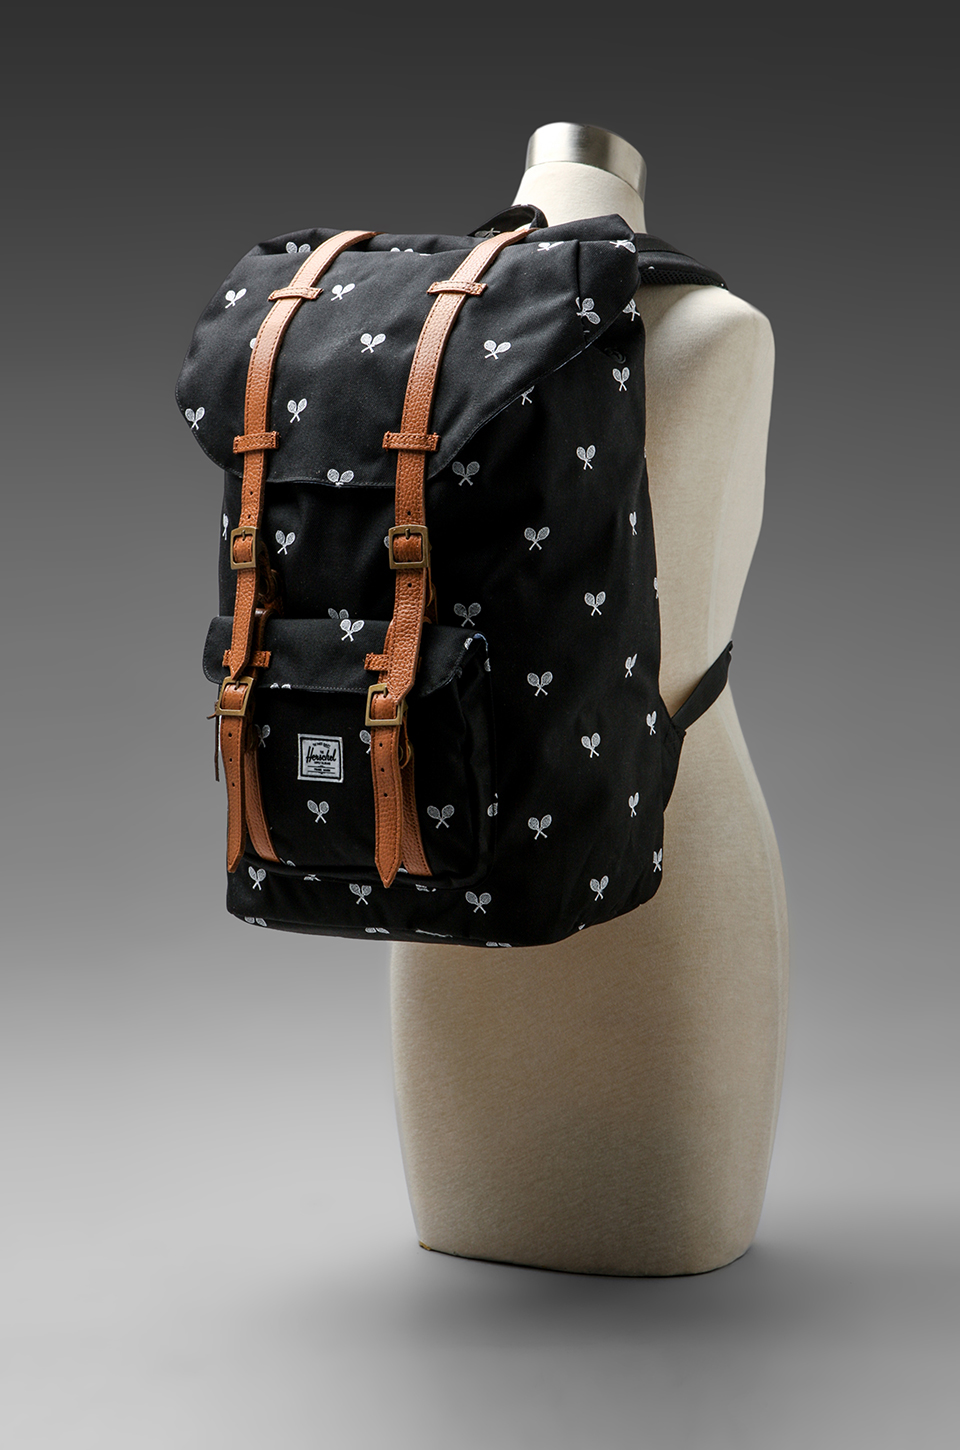 Herschel Supply Co. Invitational Collection Little America Cordura Backpack in Black/White Embroidery